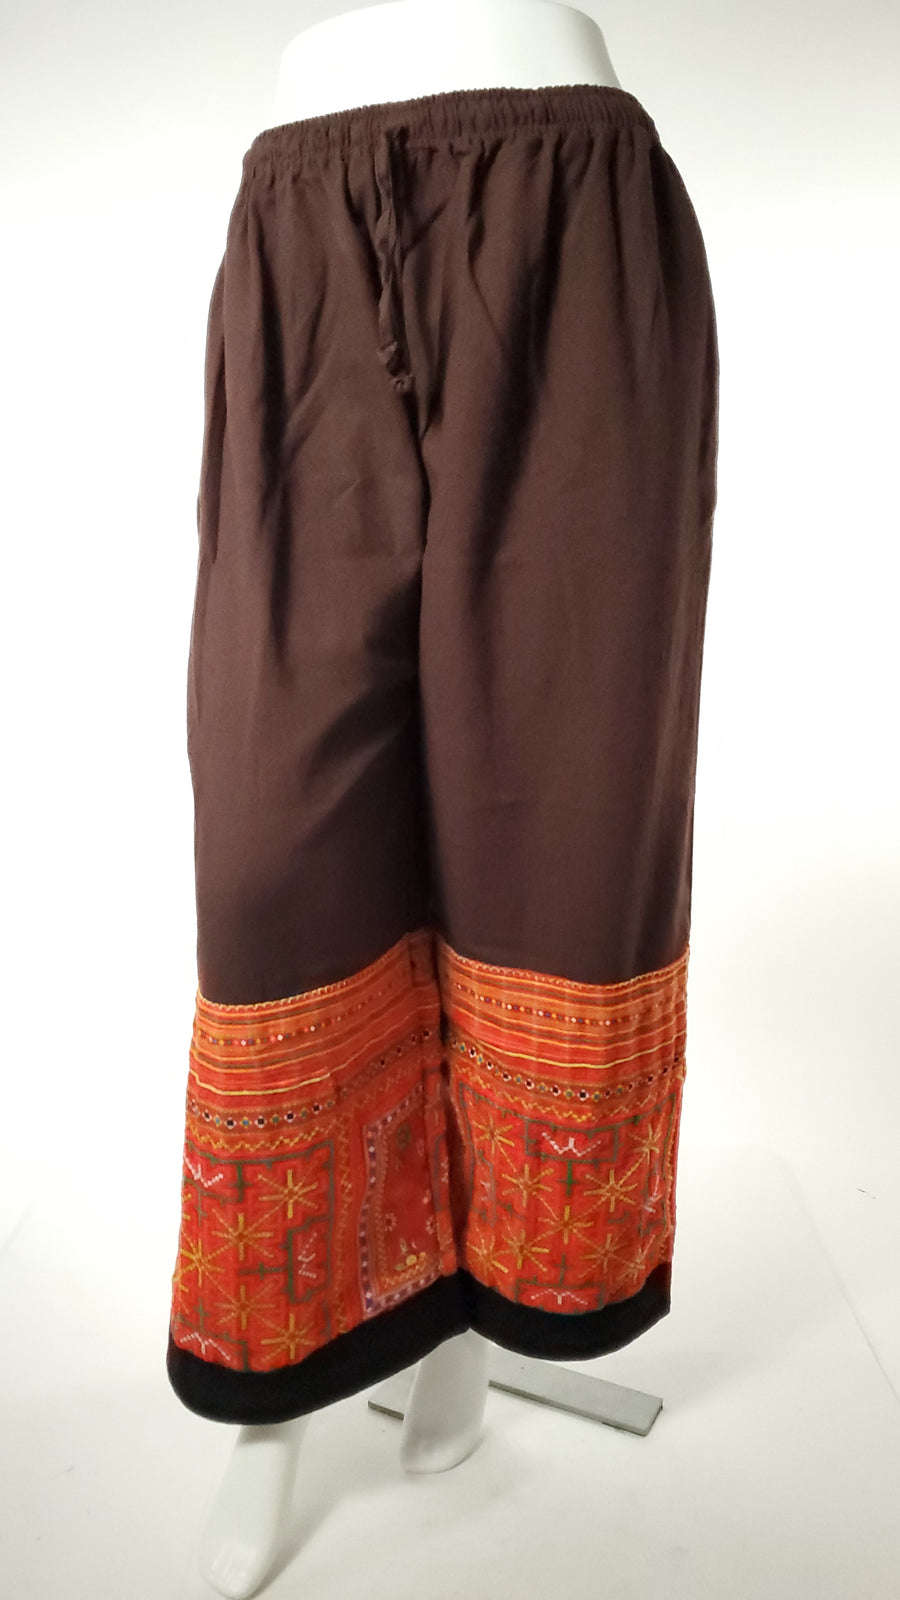 Upcycled Tribal Fabric Pants in Brown-The High Thai-The High Thai-Yoga Pants-Harem Pants-Hippie Clothing-San Diego